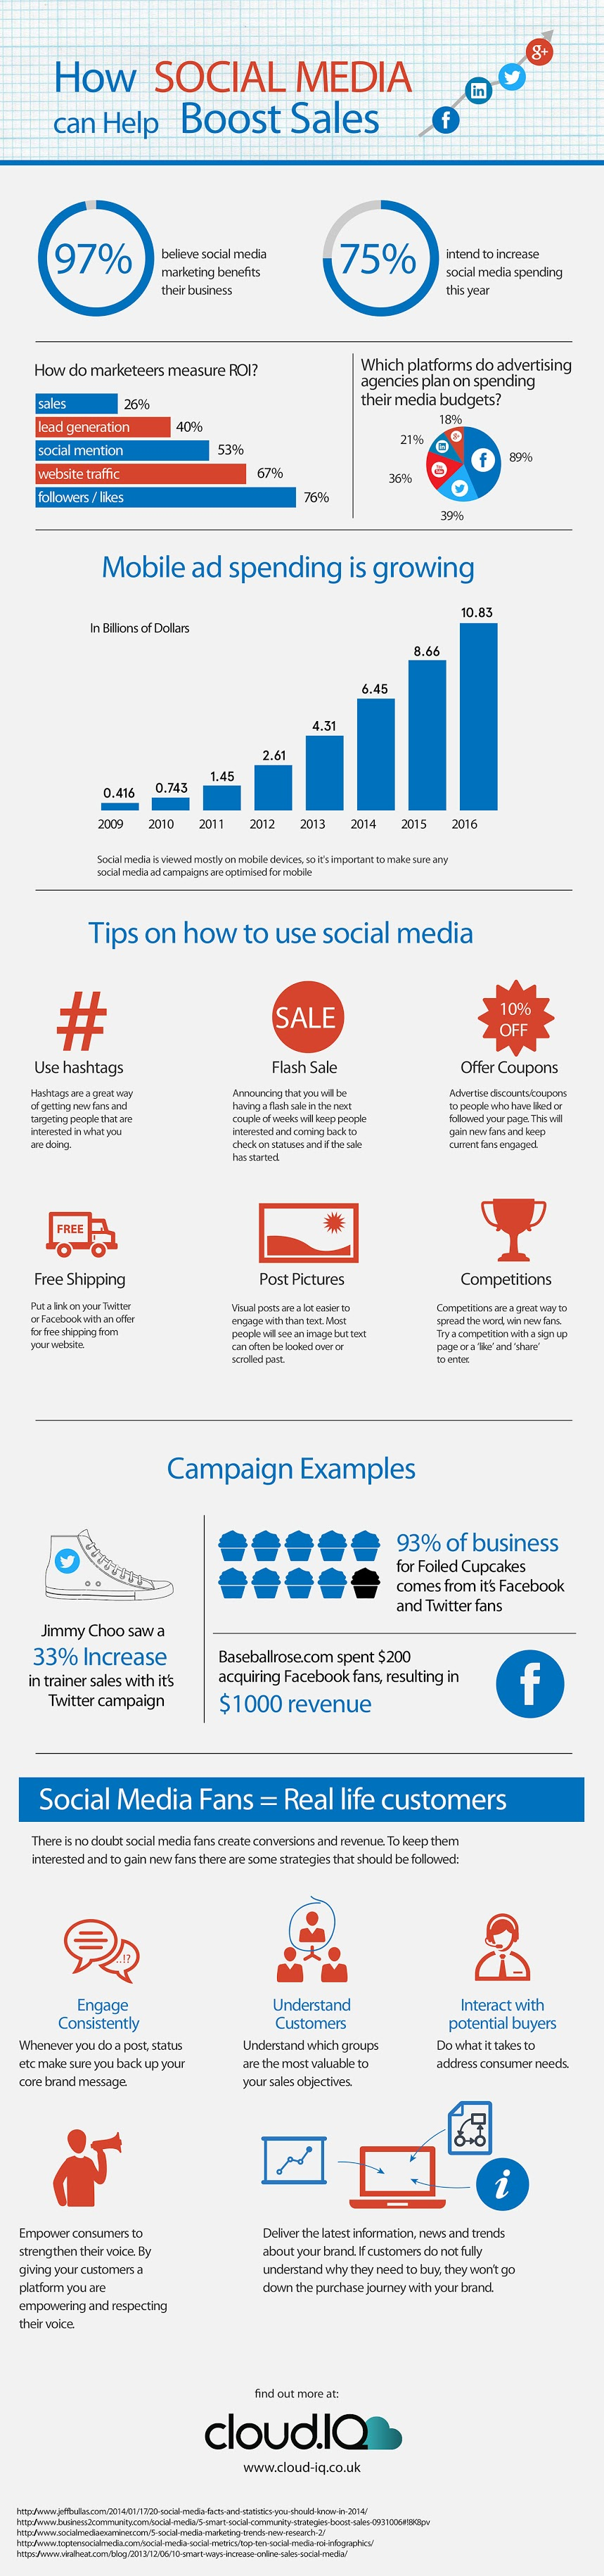 How Social Media Can Help Boost Sales #infographic